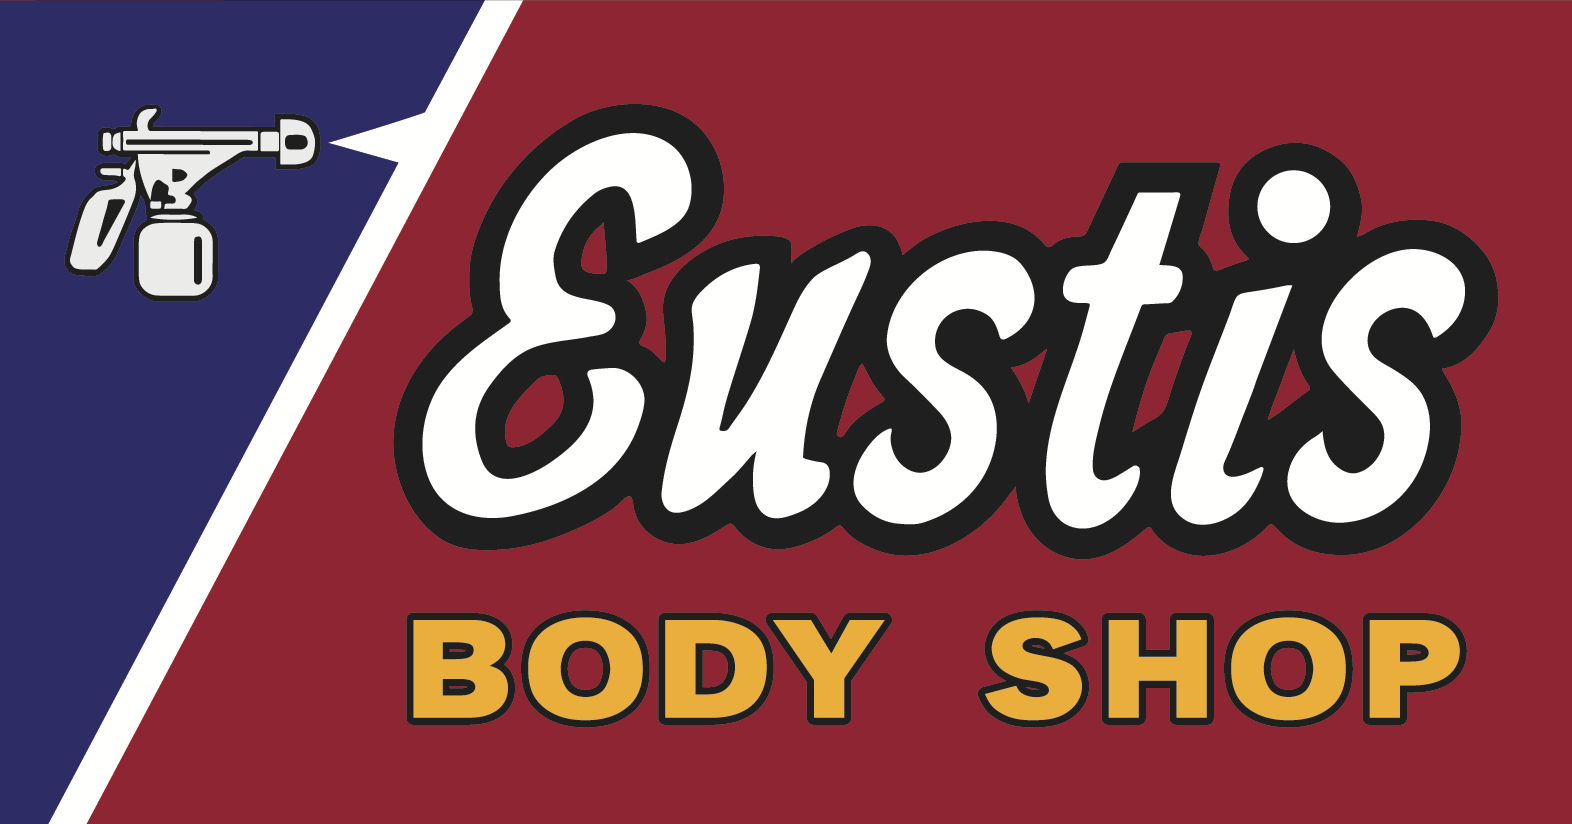 Eustis Body Shop